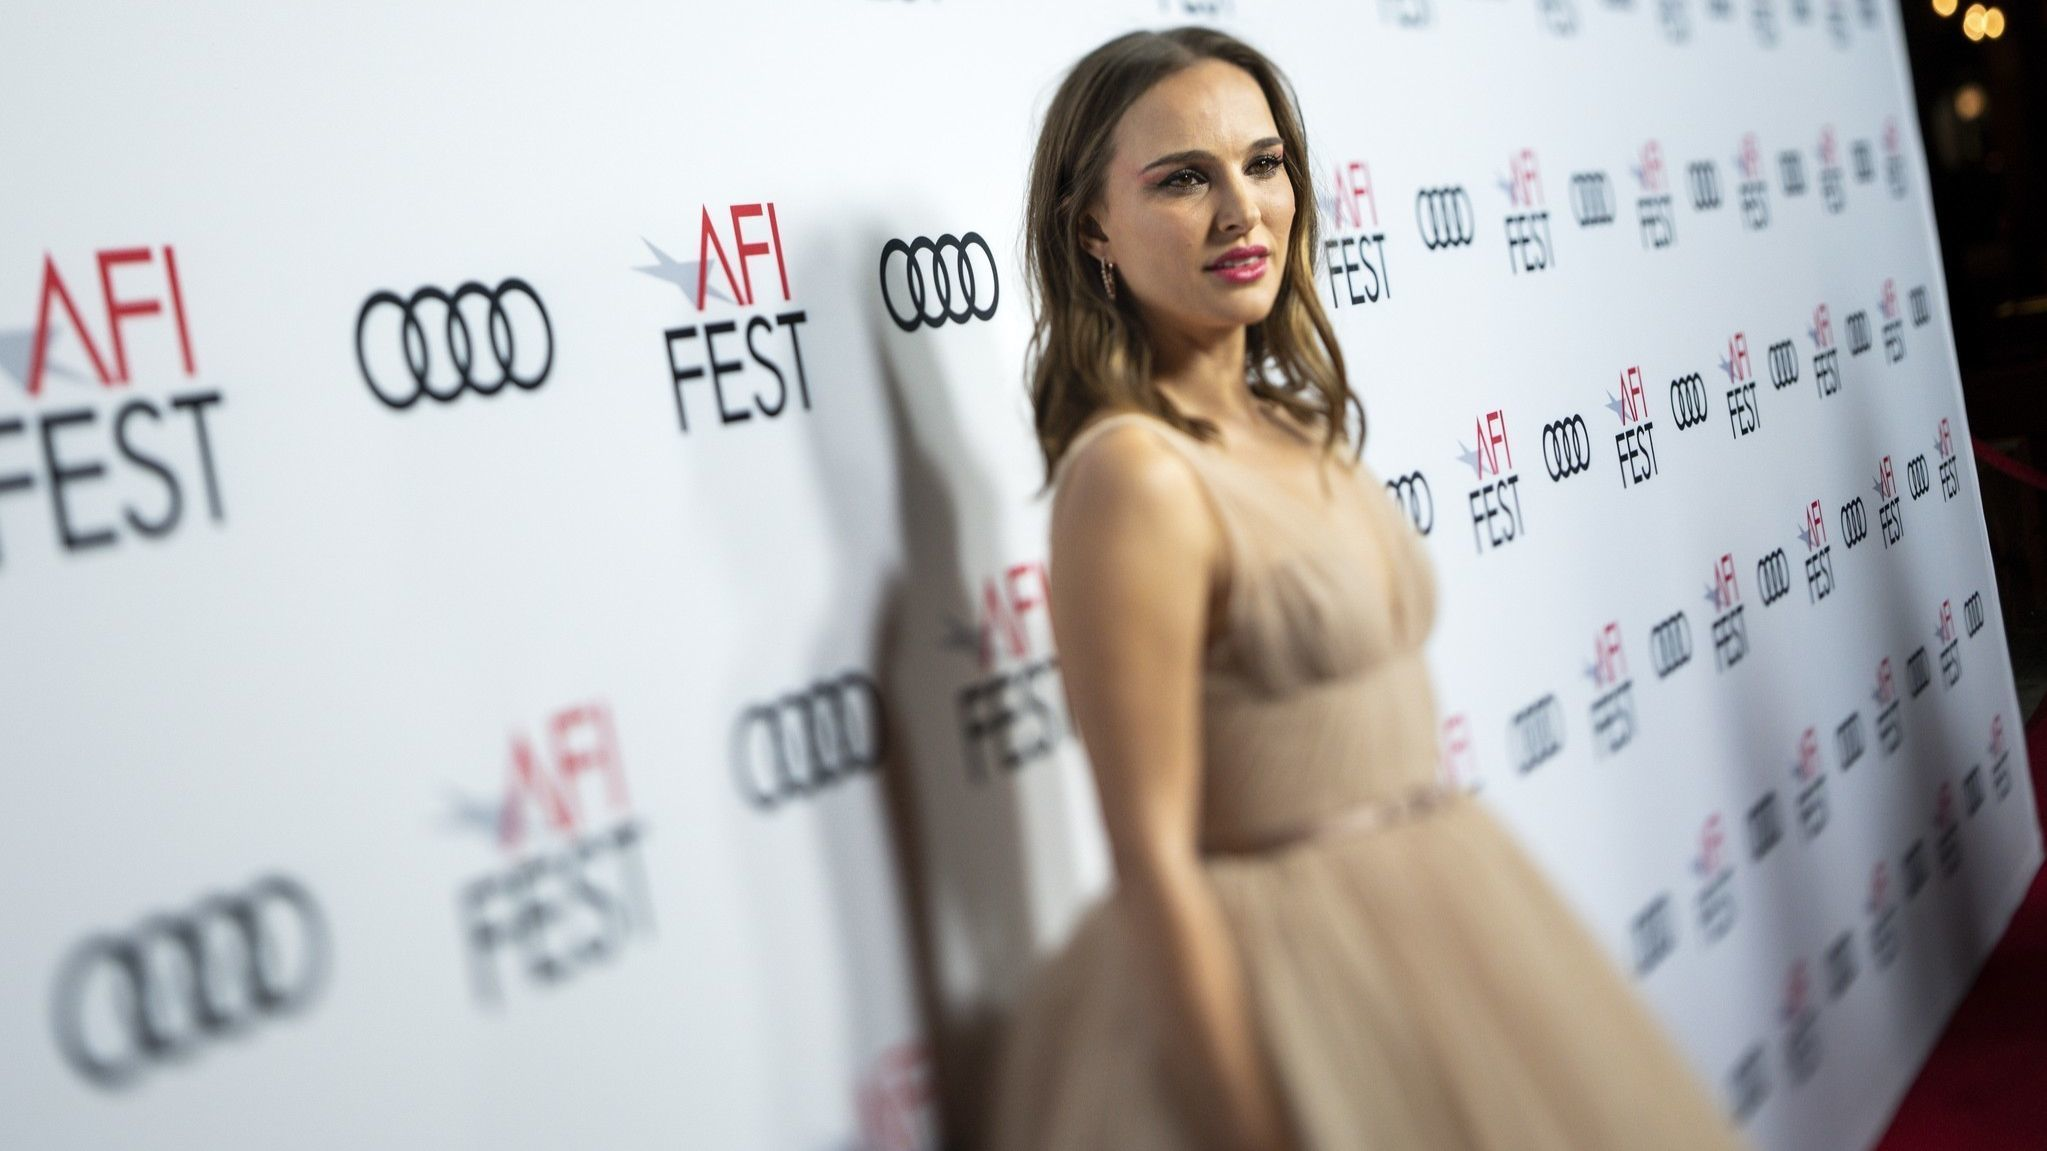 Man ordered to stay away from Natalie Portman arrested outside her Los Feliz home